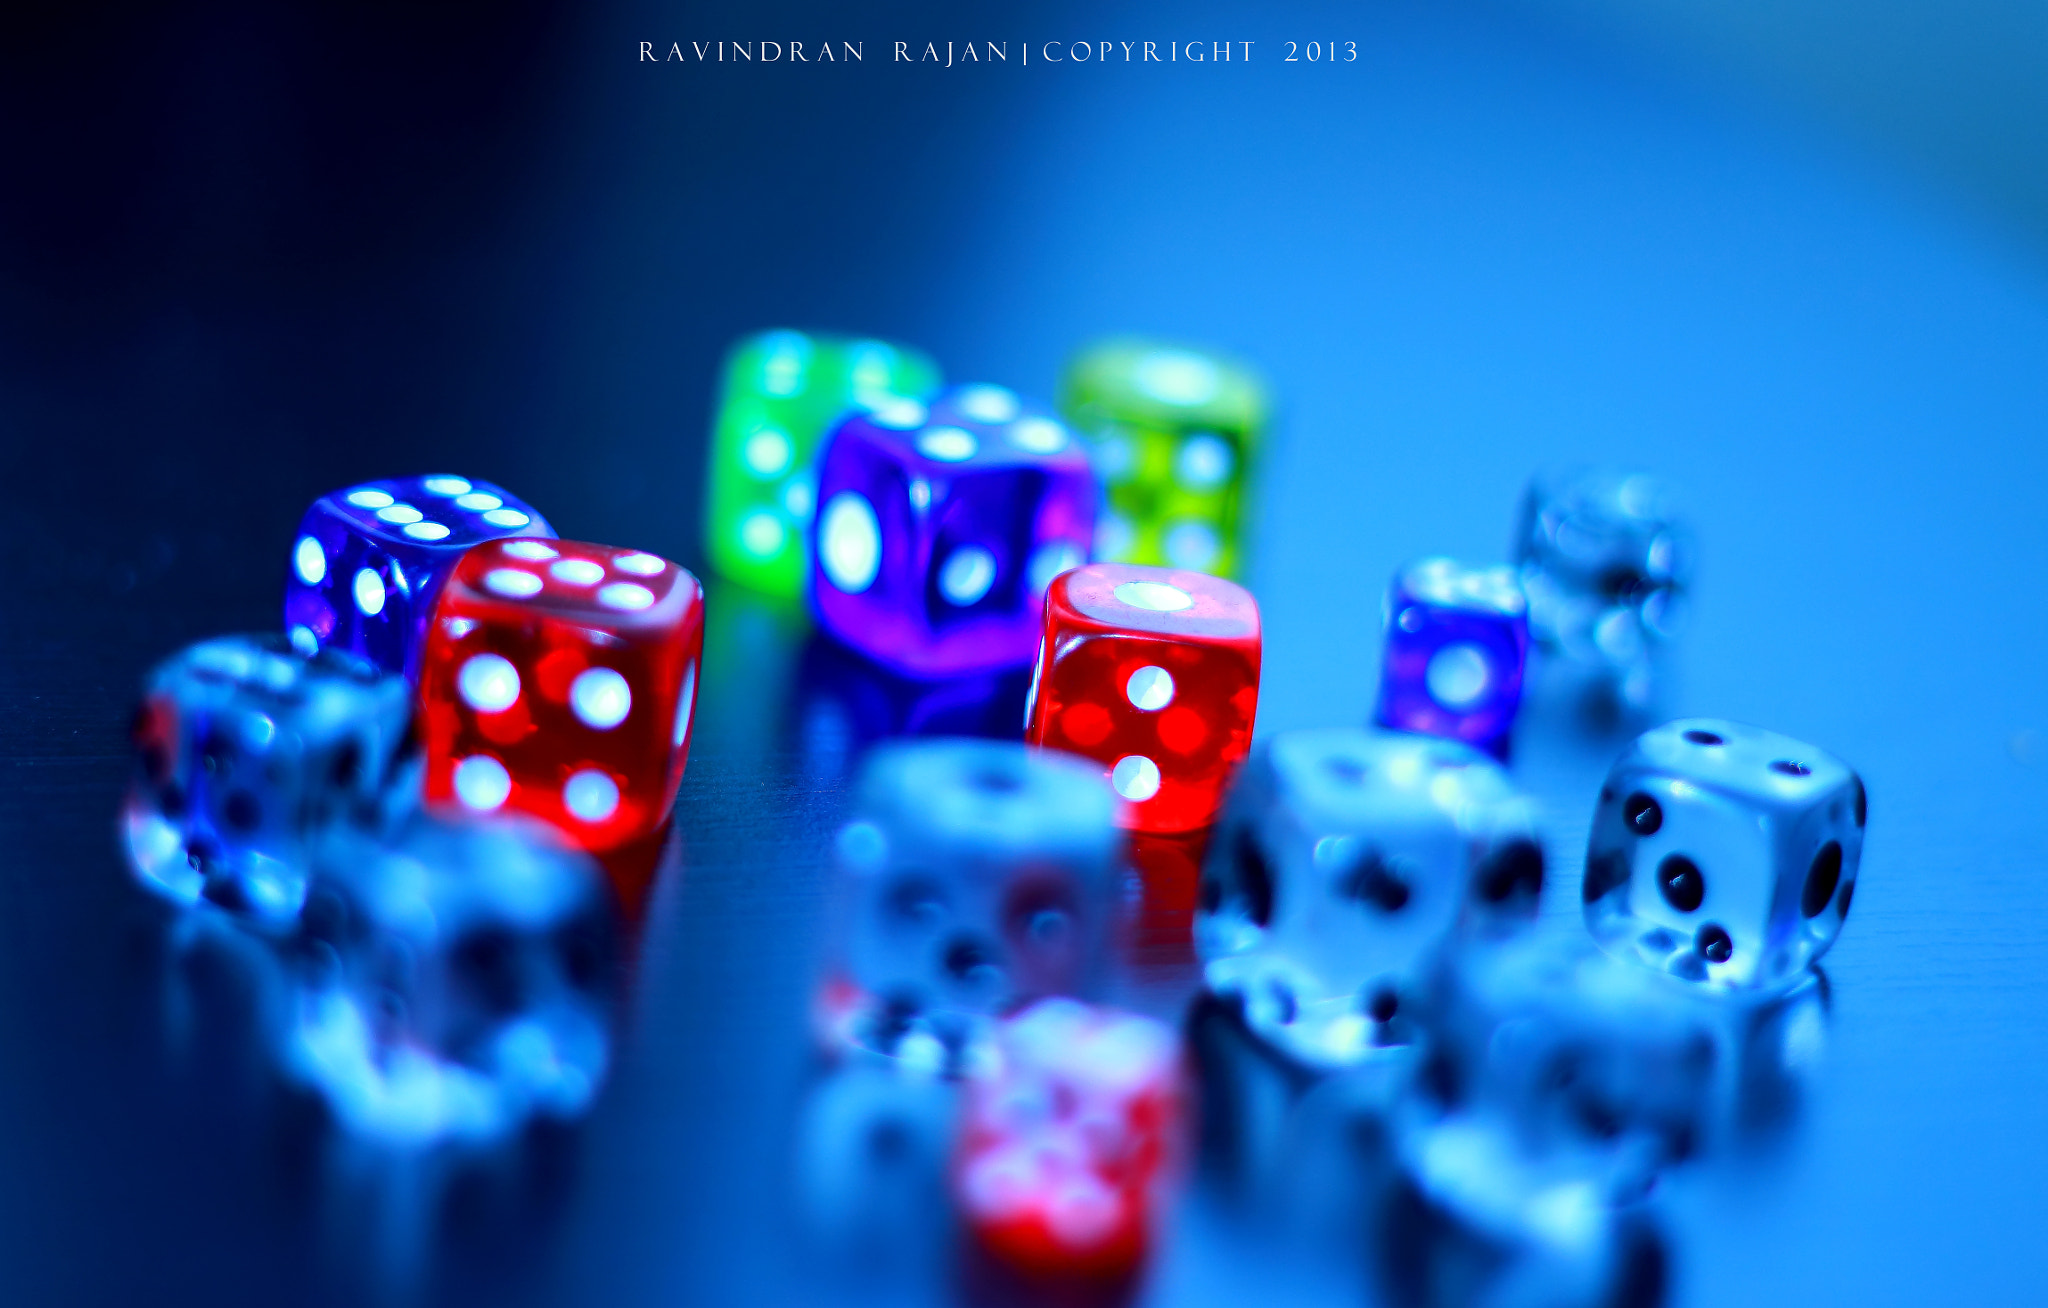 Photograph Try your luck... by Ravindran Rajan on 500px